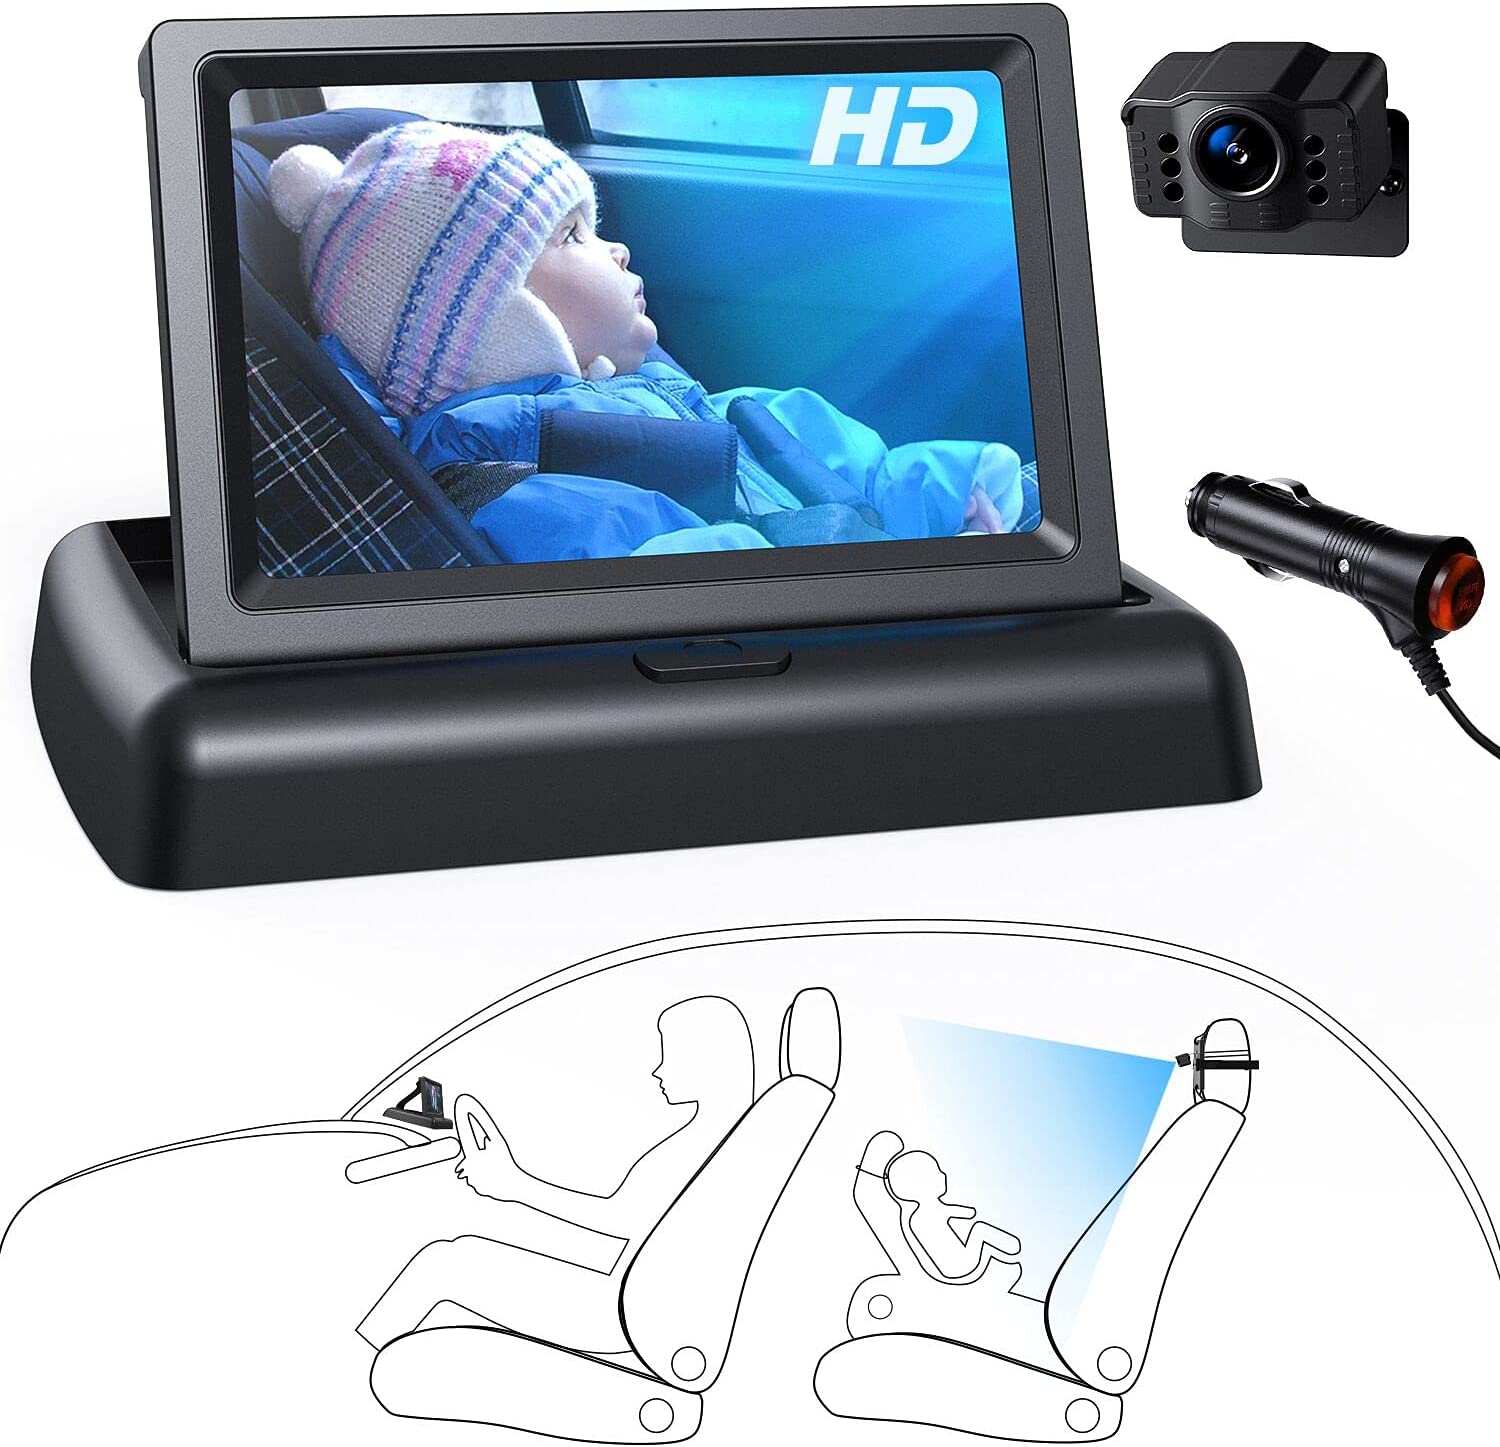 HD baby car camera mirror with monitor for car back seat backseat carseat rear view facing infant video Night Vision Easy car charger Installation